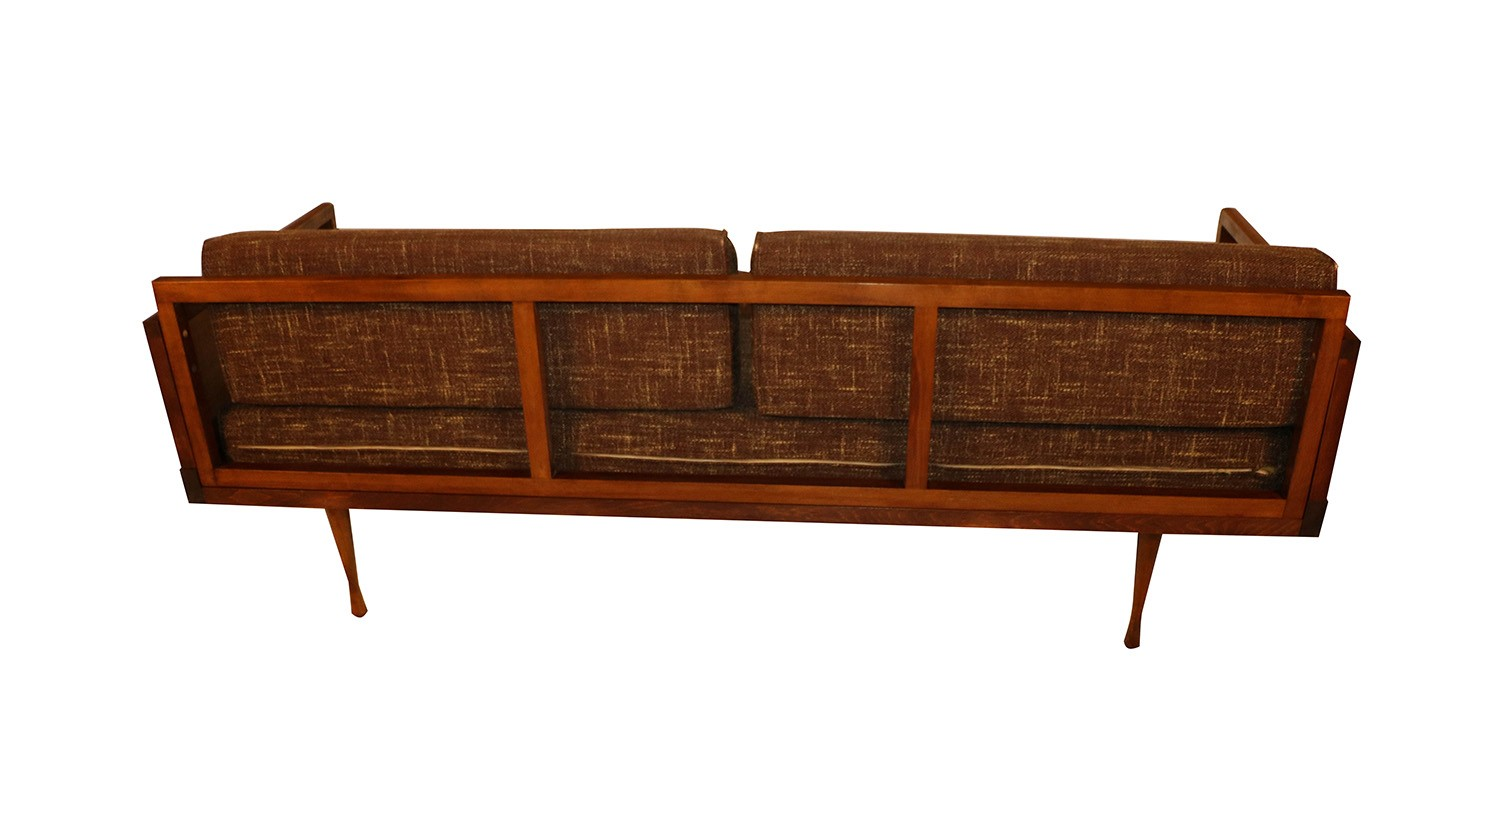 Mid century modern convertible sofa peter hvidt style for Mid century style couch